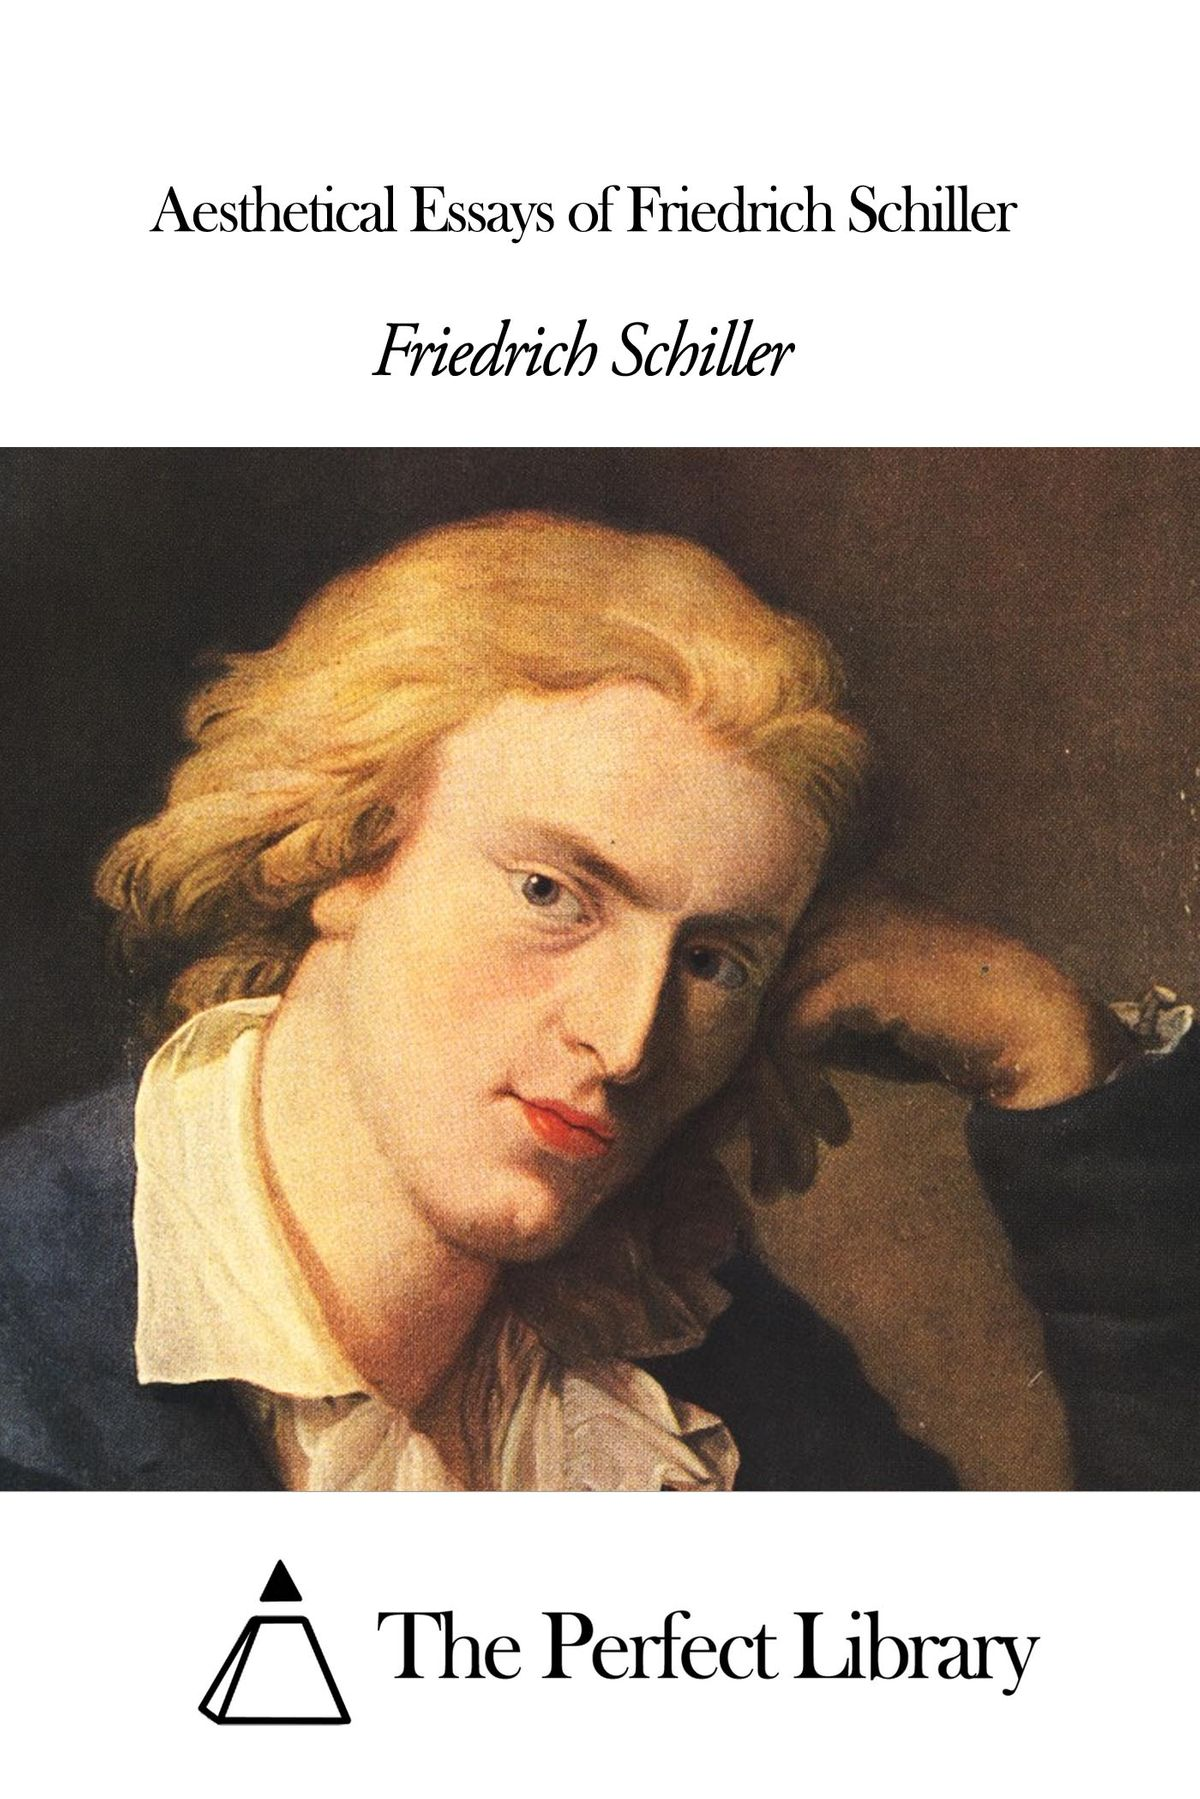 009 Essay Example Schiller Essays Aesthetical Of Friedrich Awful Full